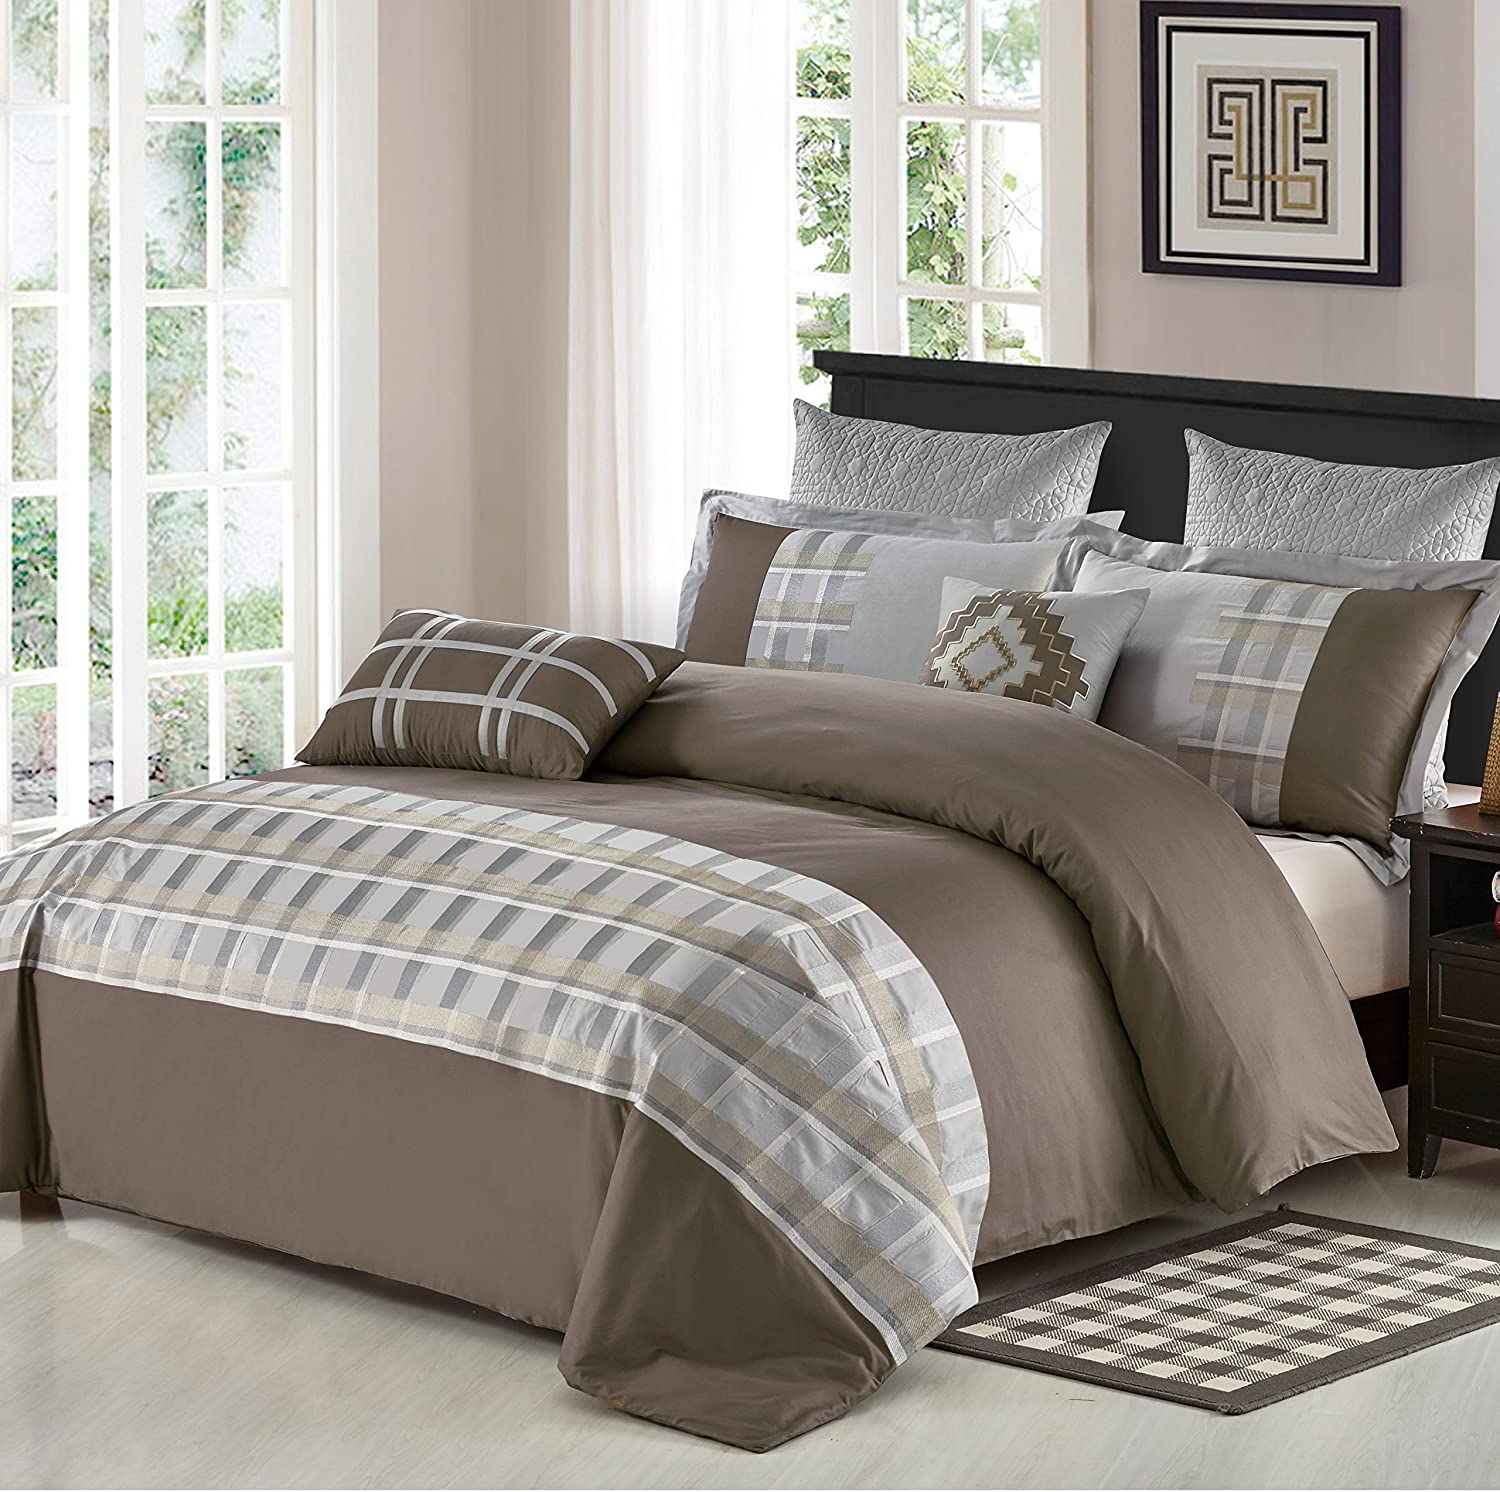 North Home Stanwick Duvet Cover Set Queen